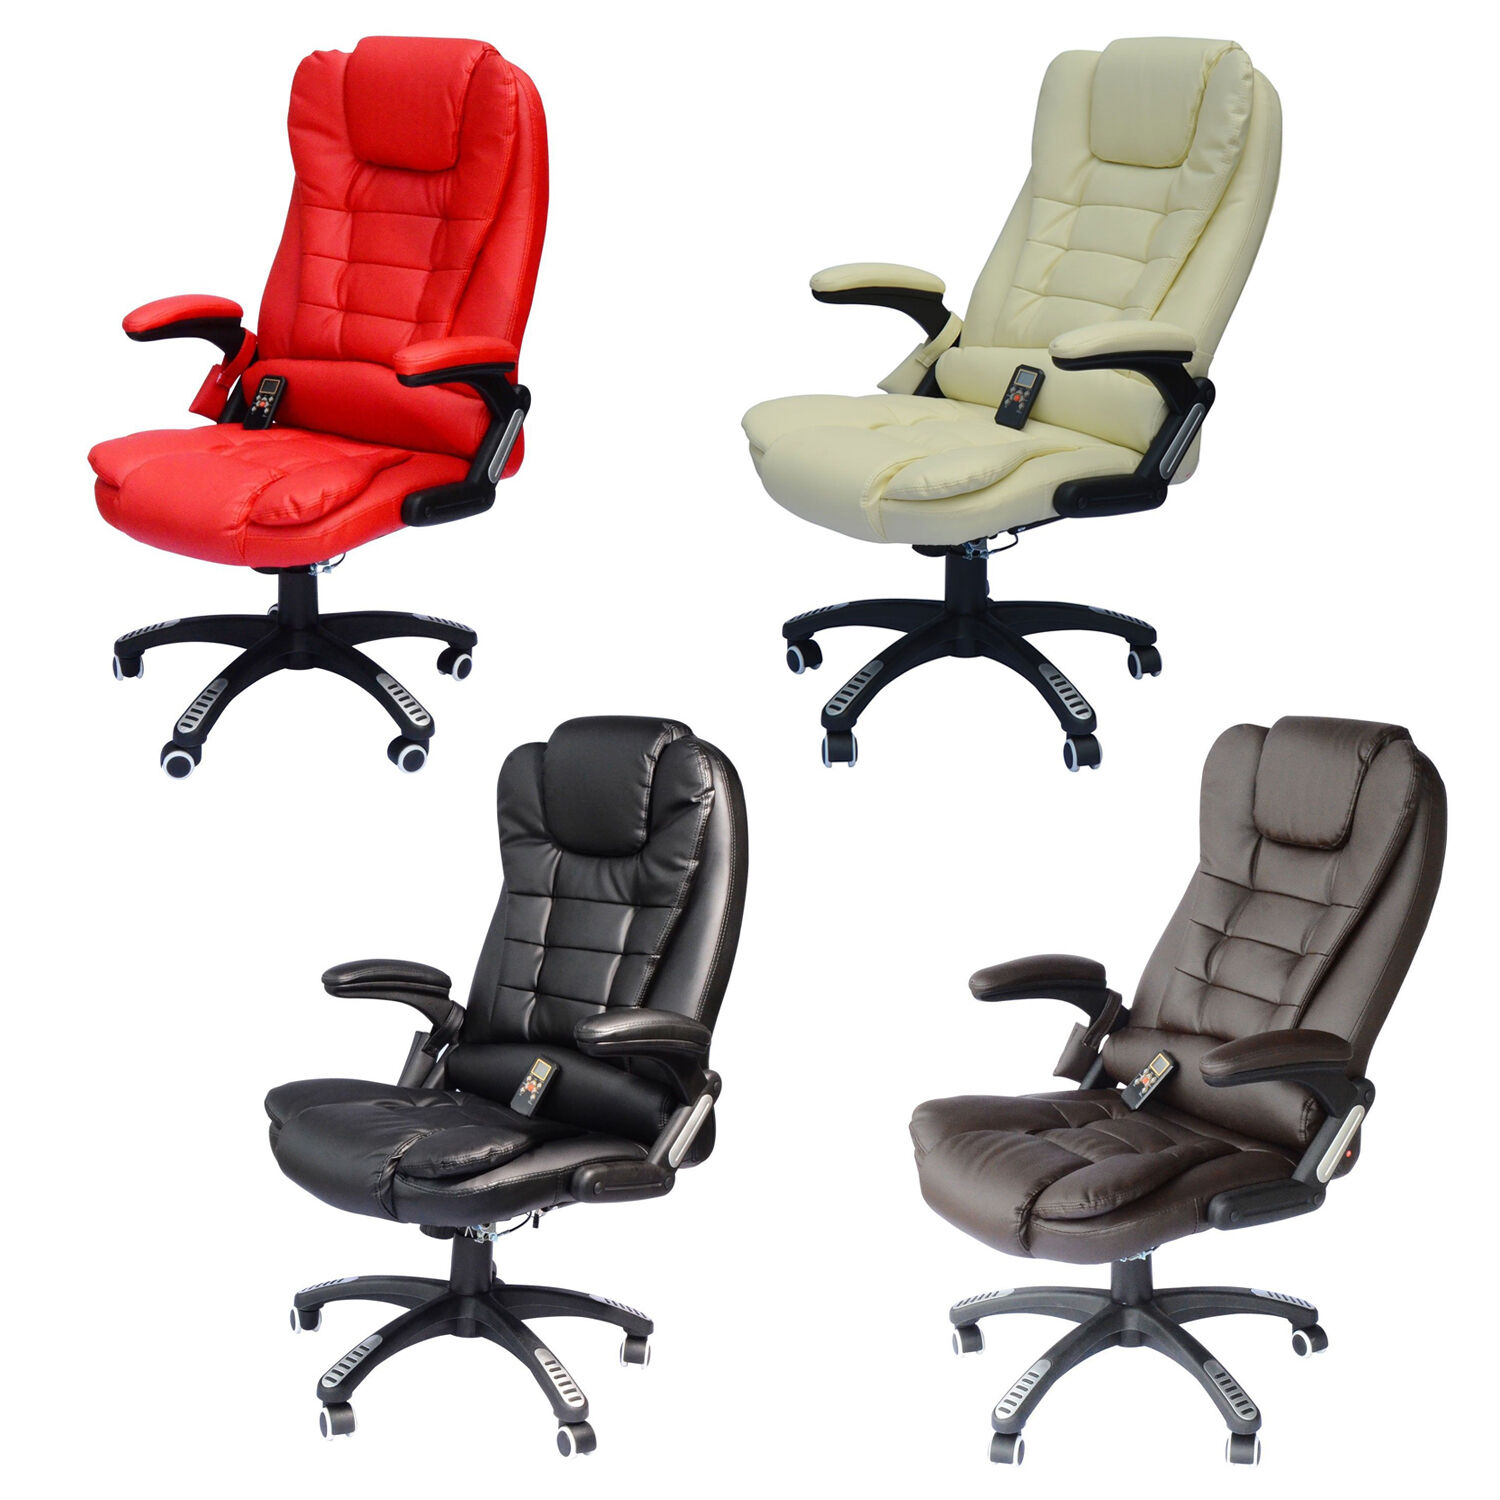 puter Chairs Ergonomic and Desk Chairs